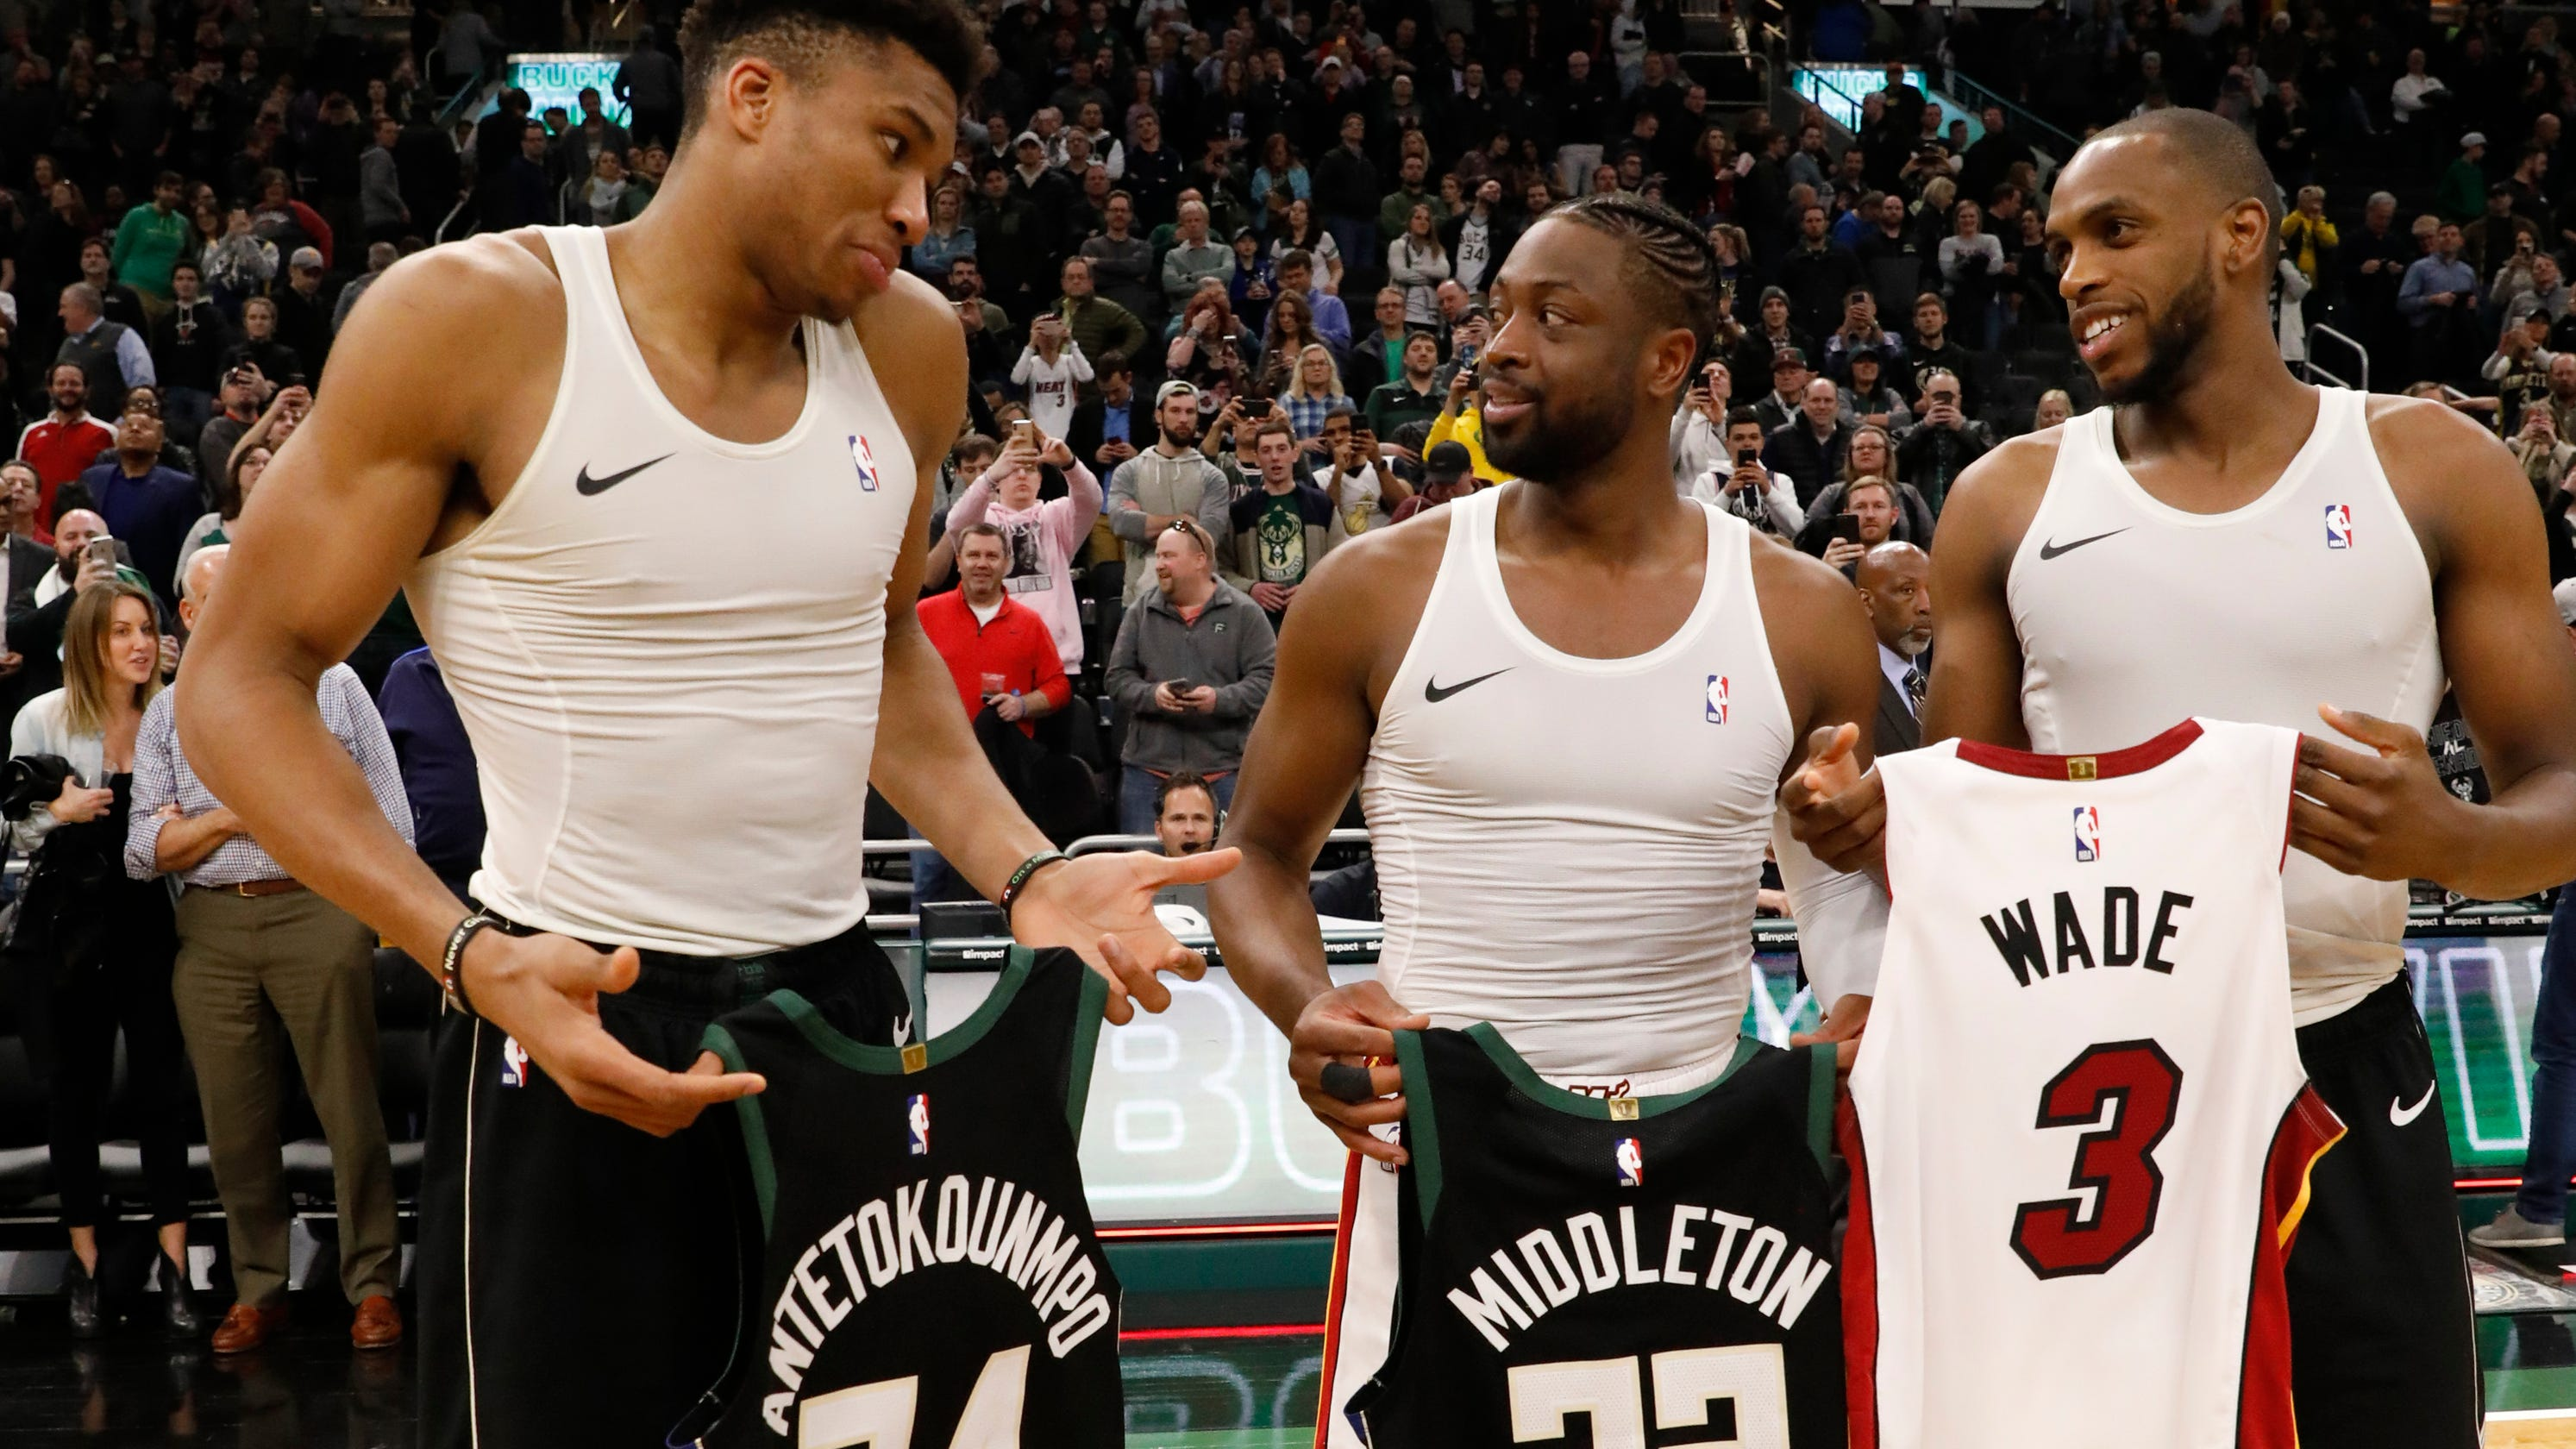 low priced 73b84 7dac5 Giannis Antetokounmpo third in jersey sales, Bucks fifth as ...